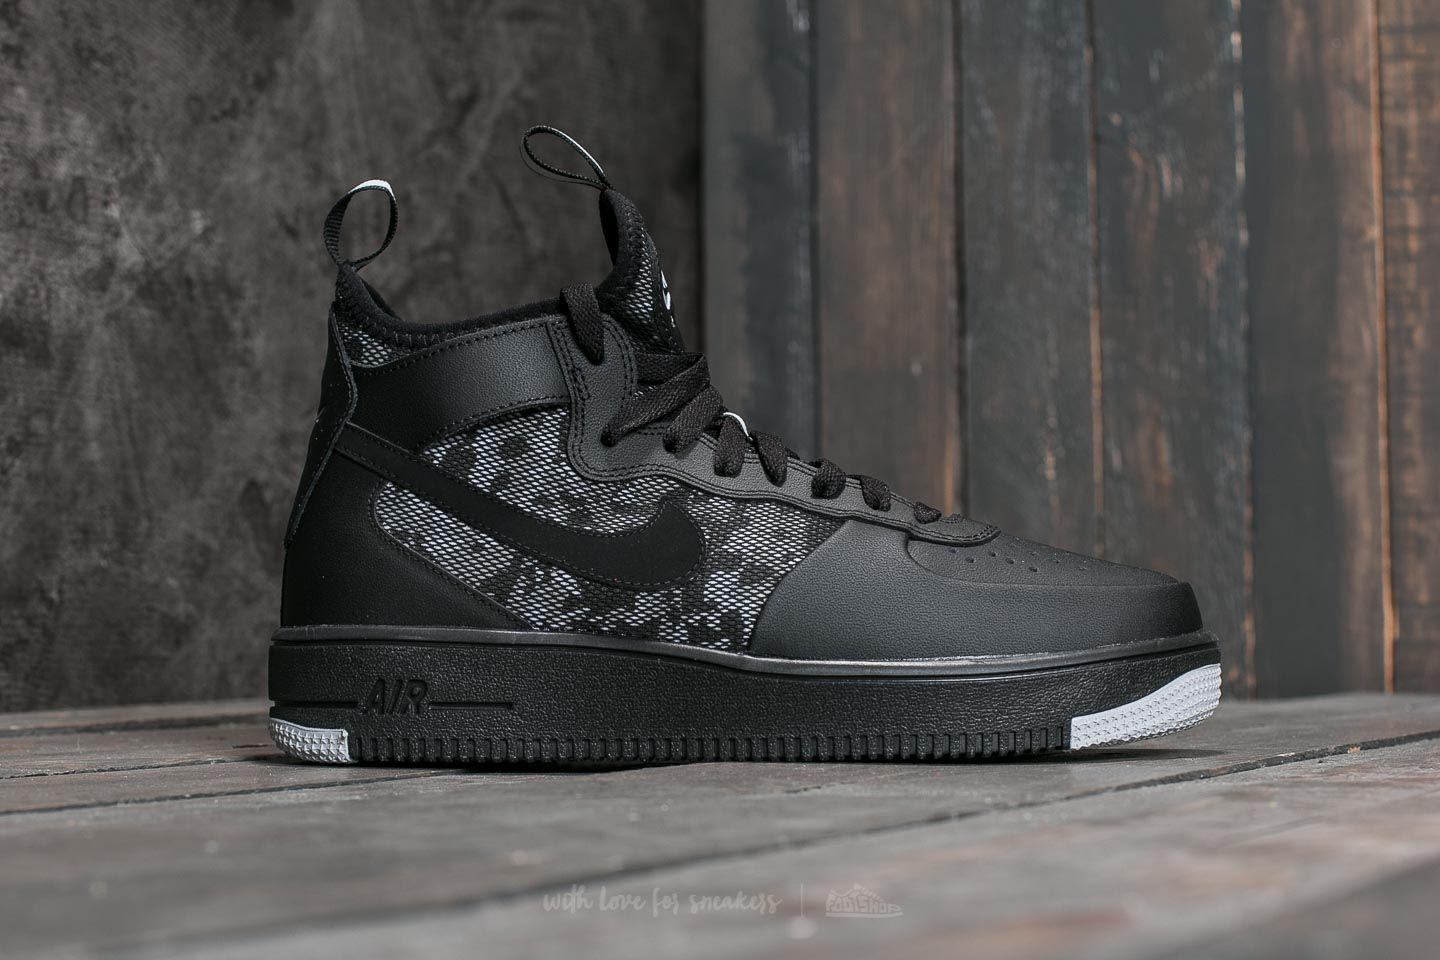 Lyst - Nike Air Force 1 Ultraforce Mid Black  Black-wolf Grey-white ... 73c0bbff4